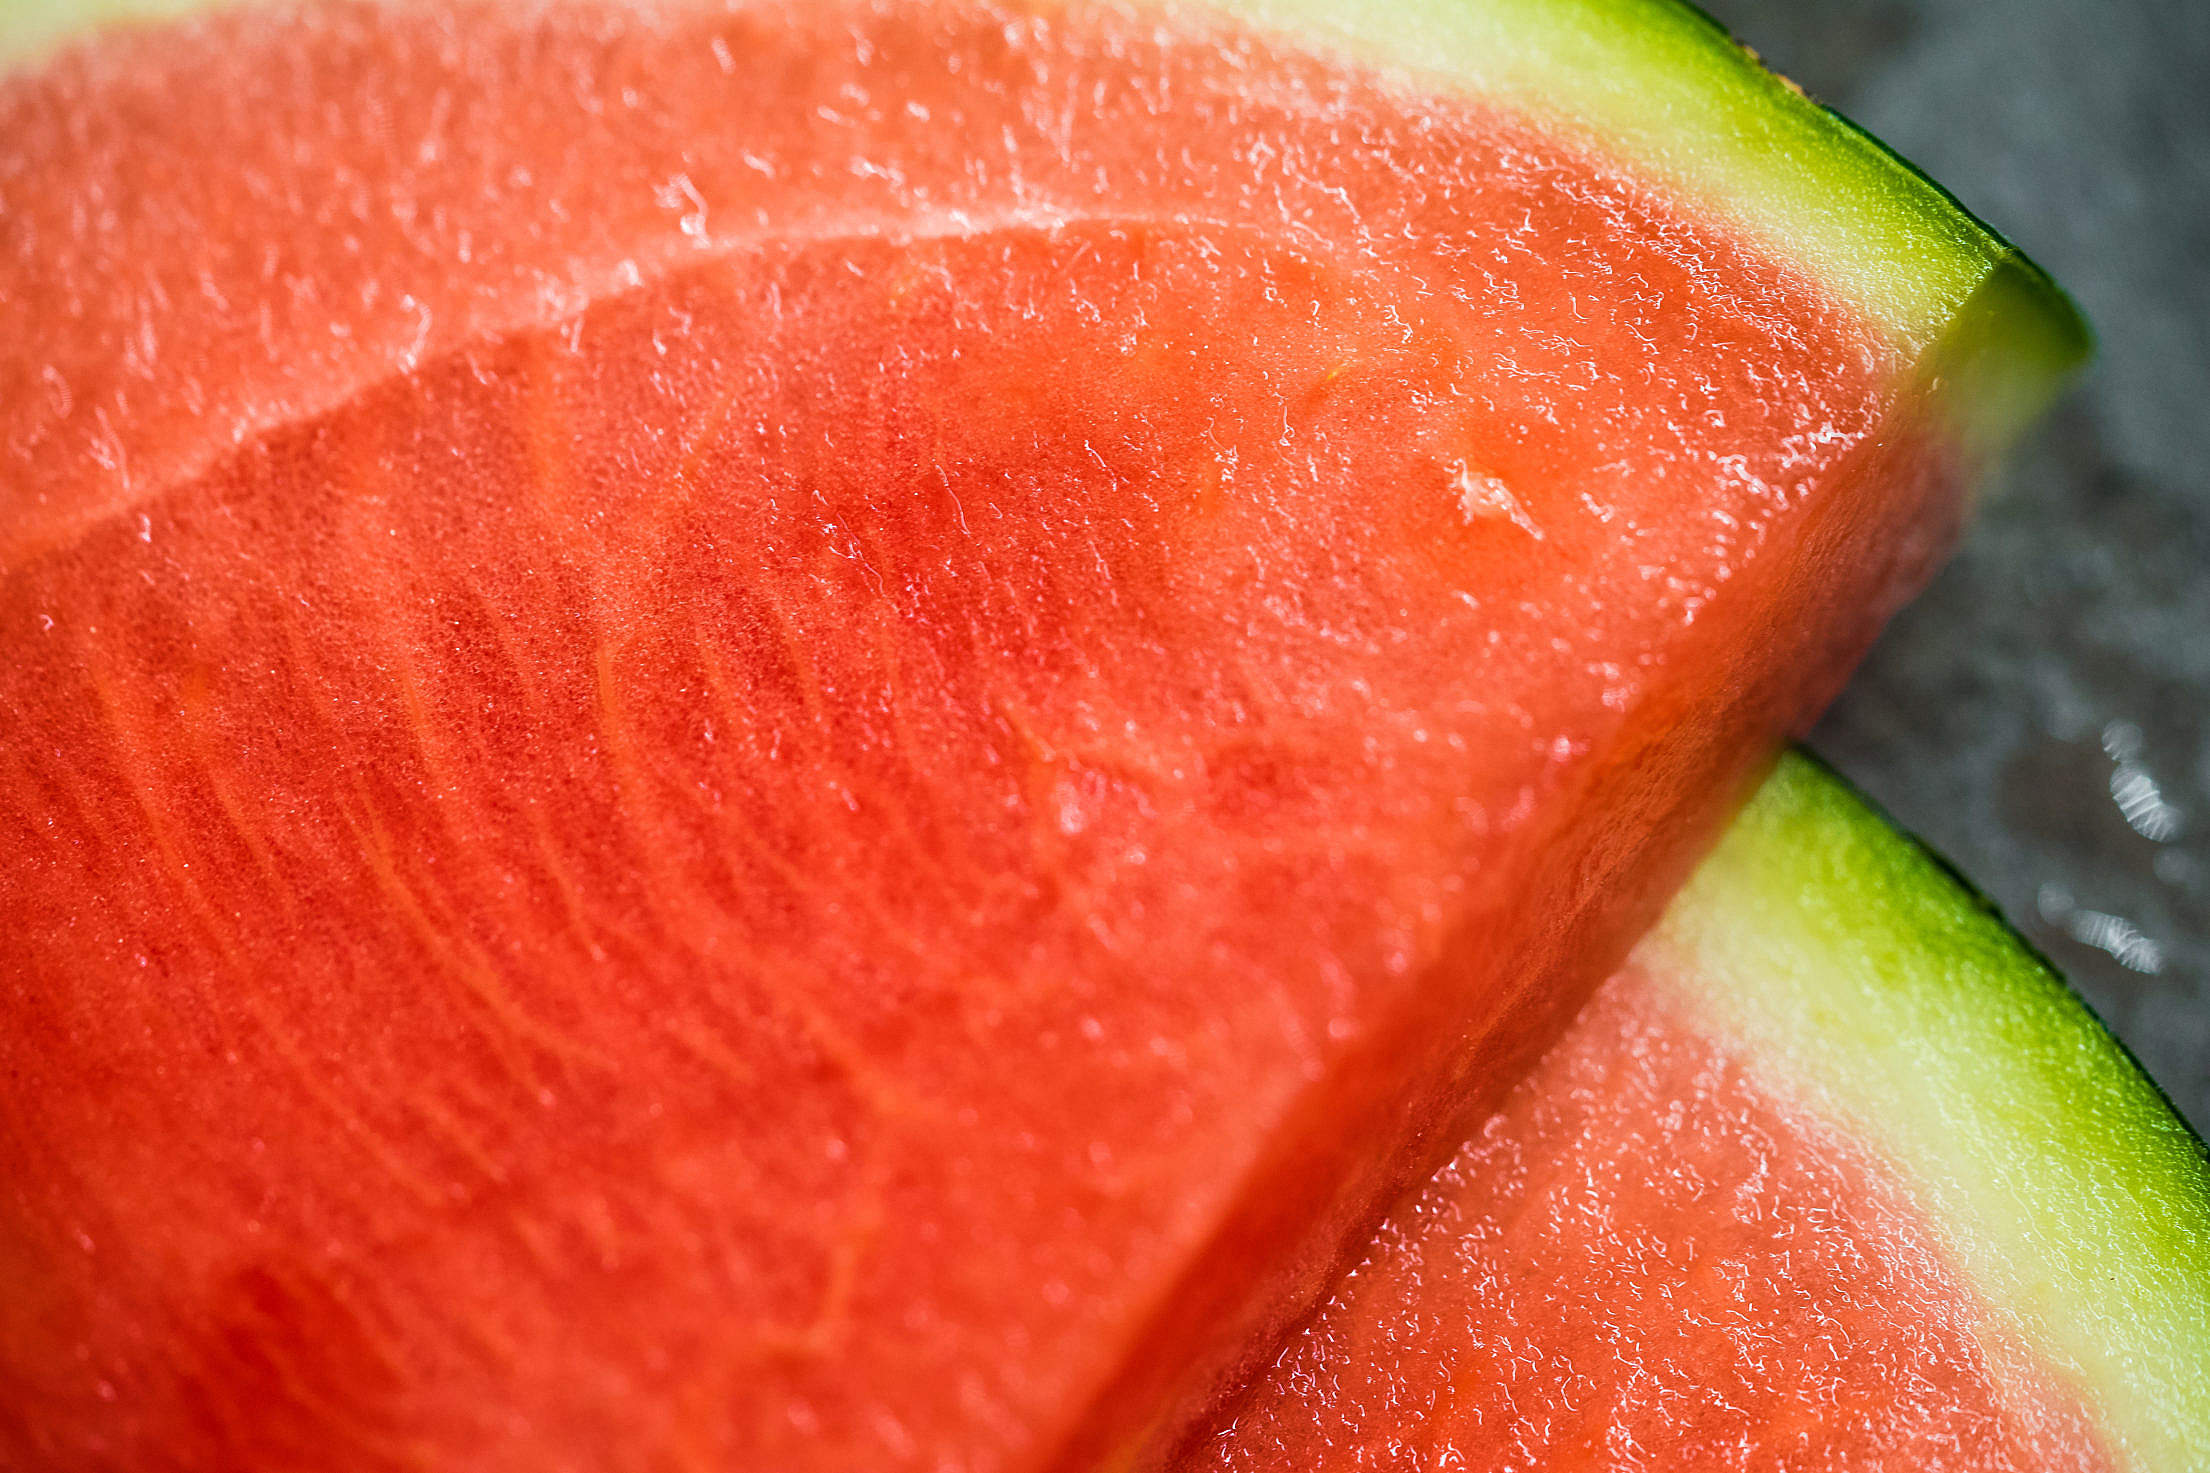 Slices of Watermelon Close Up Free Stock Photo